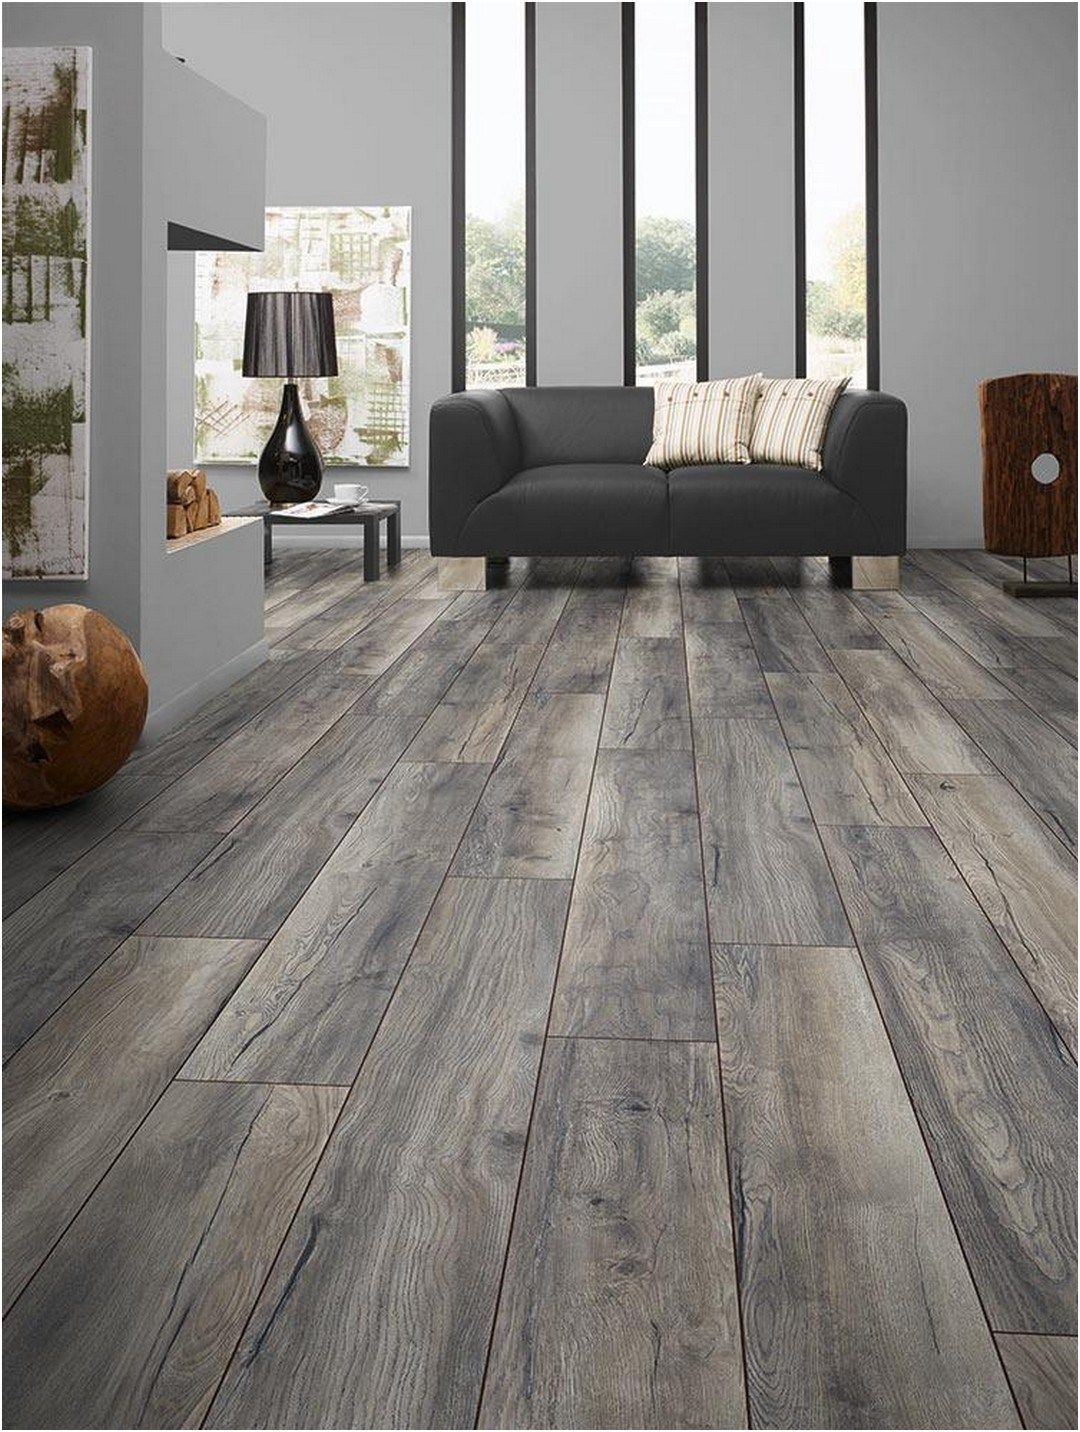 Lifeproof Rigid Core Vinyl Flooring Images Dark Gray Luxury Pvc Flooring Plank For The Home House Flooring Grey Laminate Flooring Flooring